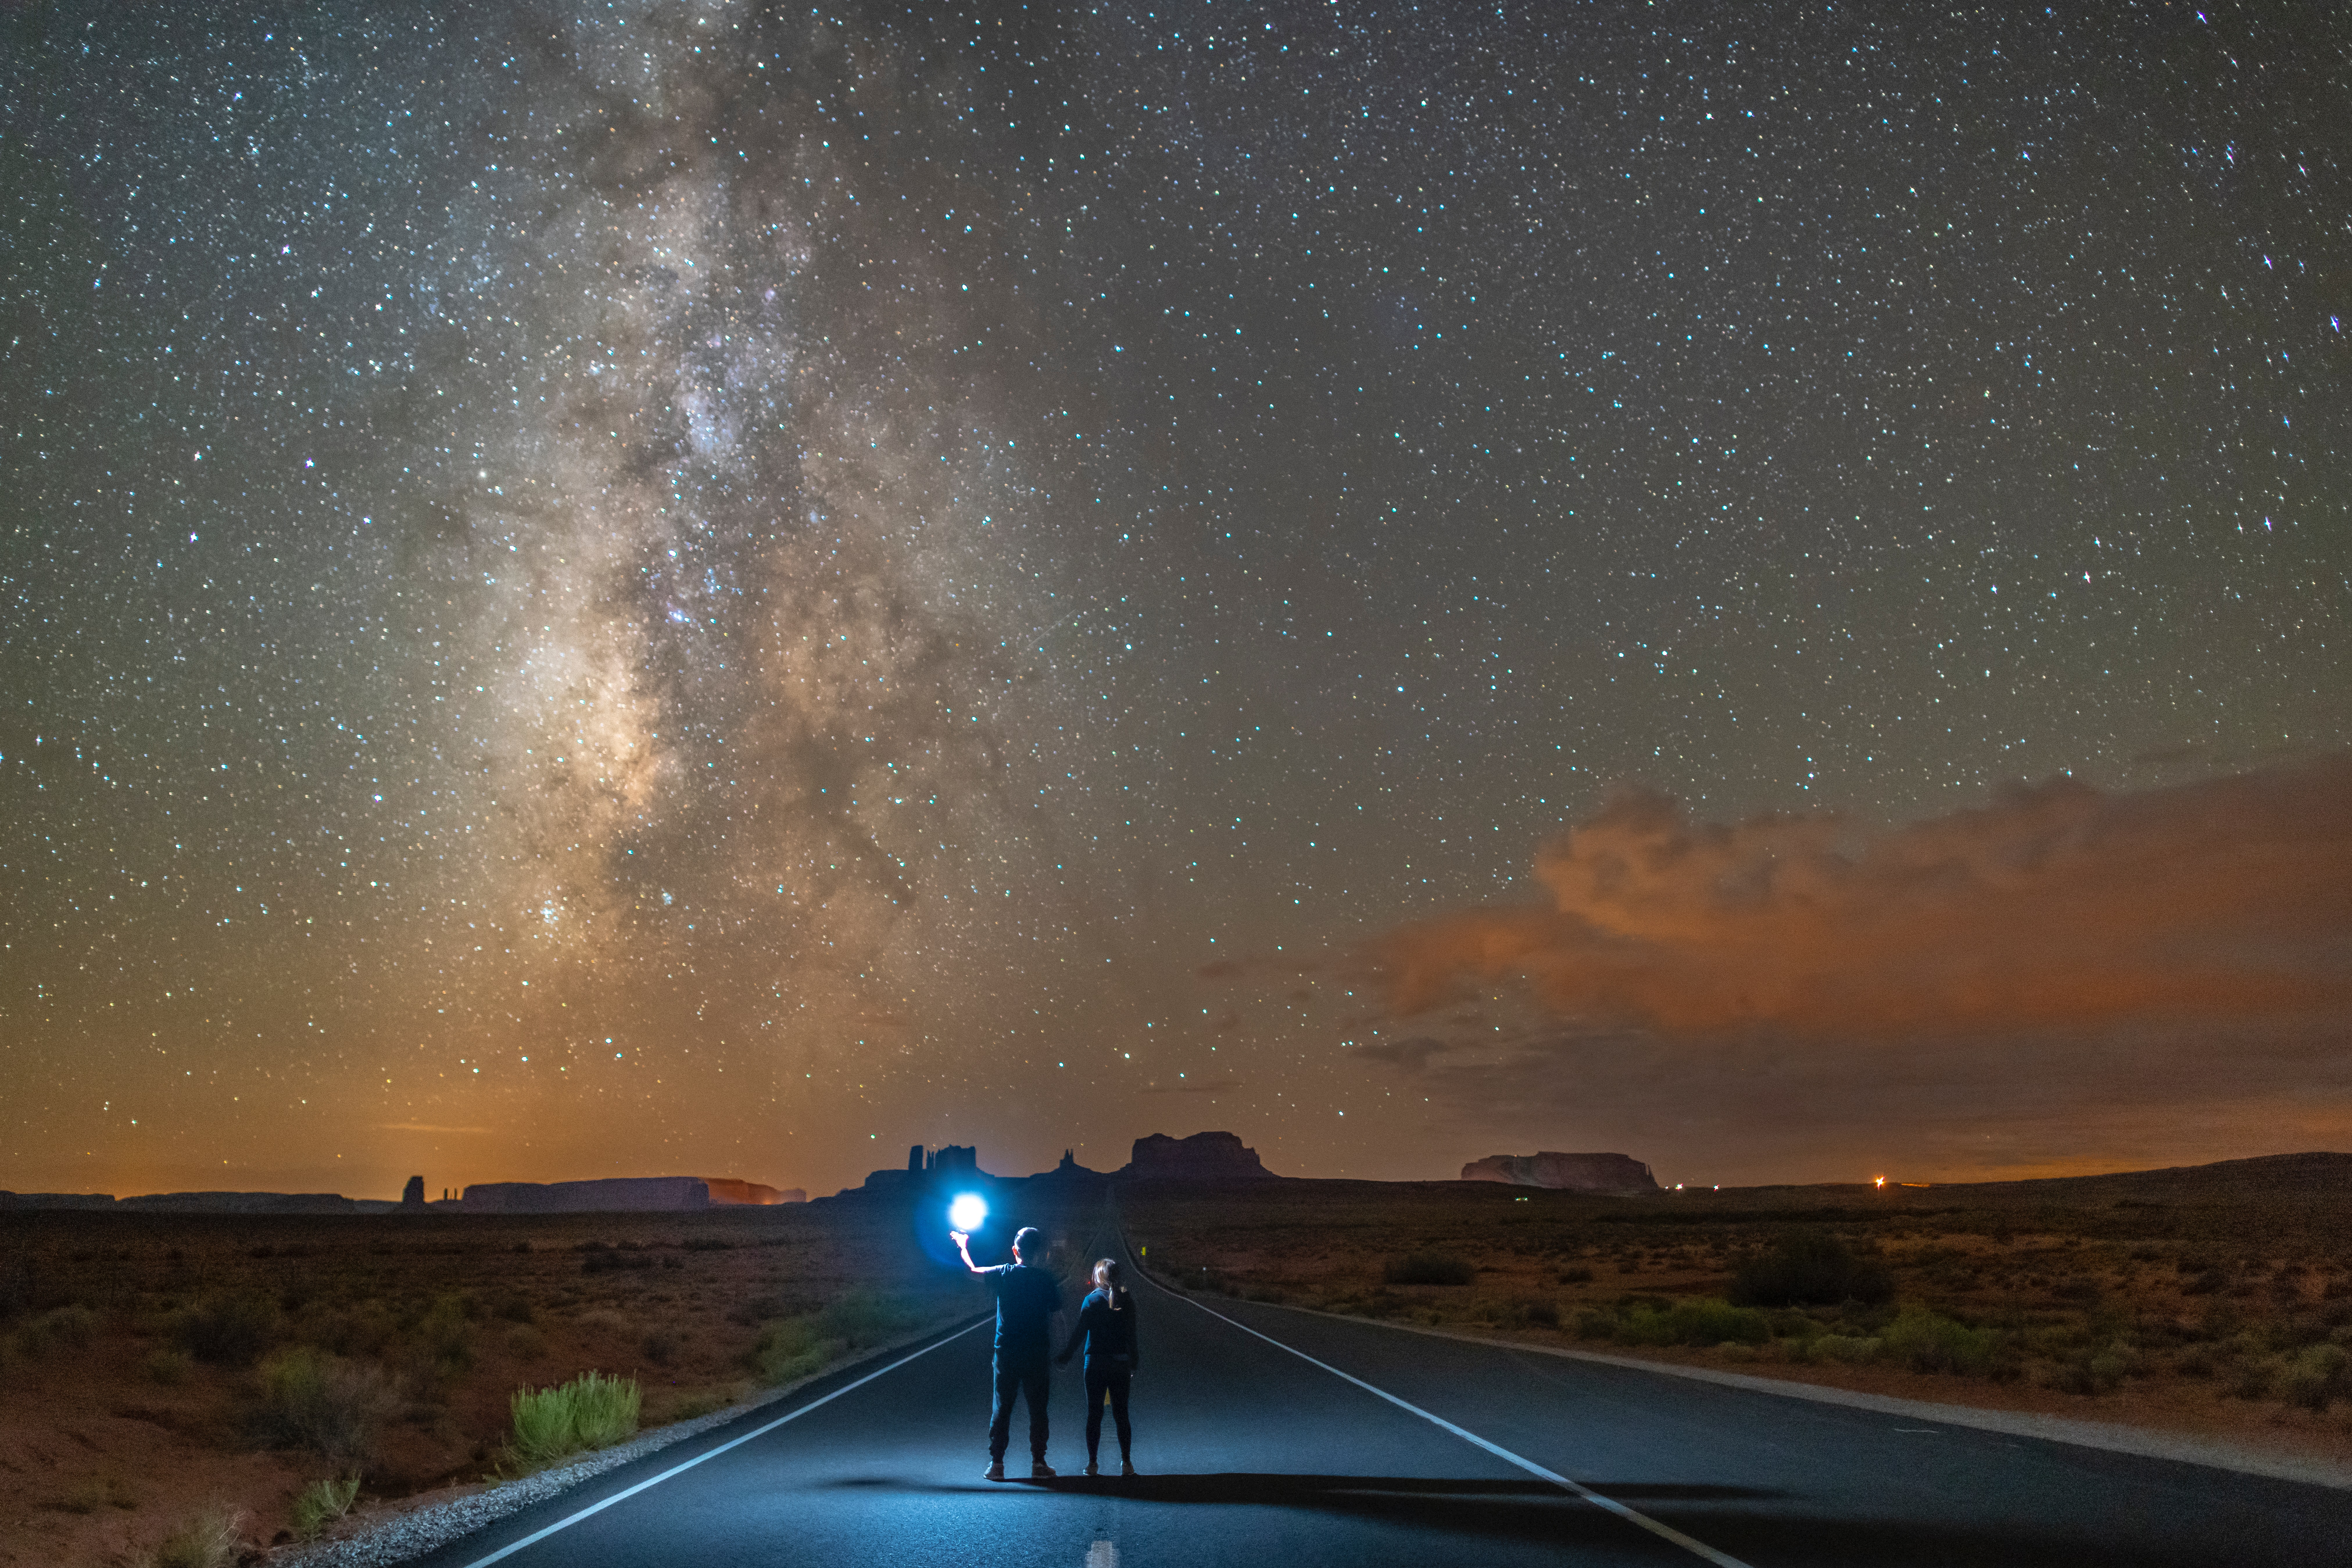 ken-cheung-two children on two lane road from back to night sky full of stars SW-unsplash